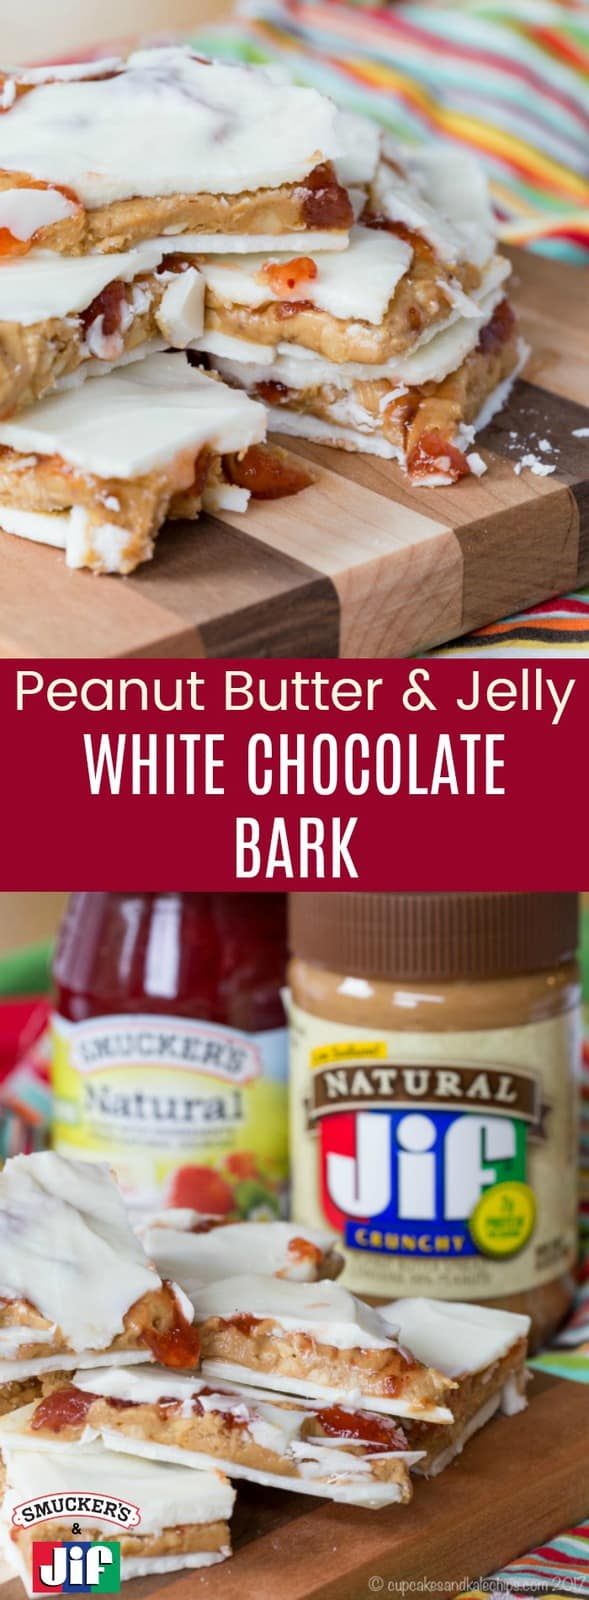 Peanut Butter and Jelly White Chocolate Bark - an easy holiday candy recipe stuffed with creamy Jif Peanut Butter filling and swirls of Smucker's Natural Strawberry Fruit Spread makes the perfect gift. Spread the #PBJLove this holiday season. #AD